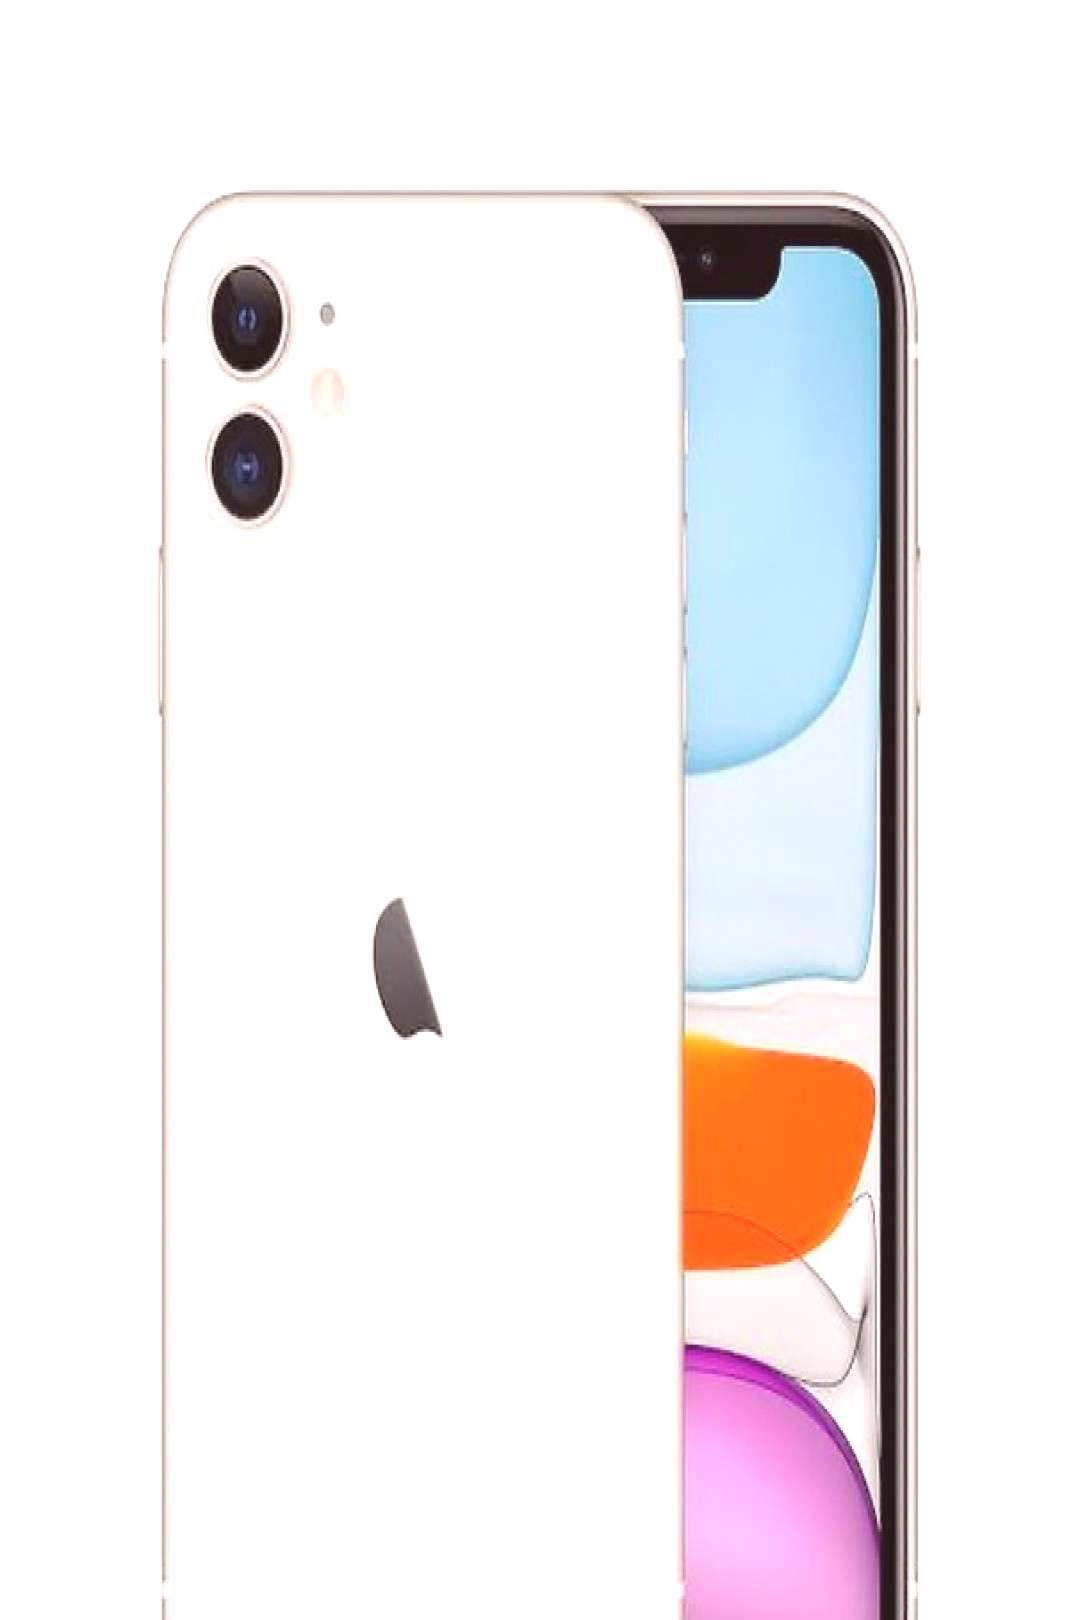 #released #iphone #store #phone #varia #more #new #and #the #11 #on #6 Released New iPhone 11 and iPhone 6 on the store More phone variaYou can find Make money quick and more on our website.Released New iPhone 11 and iPhone 6 on the store...